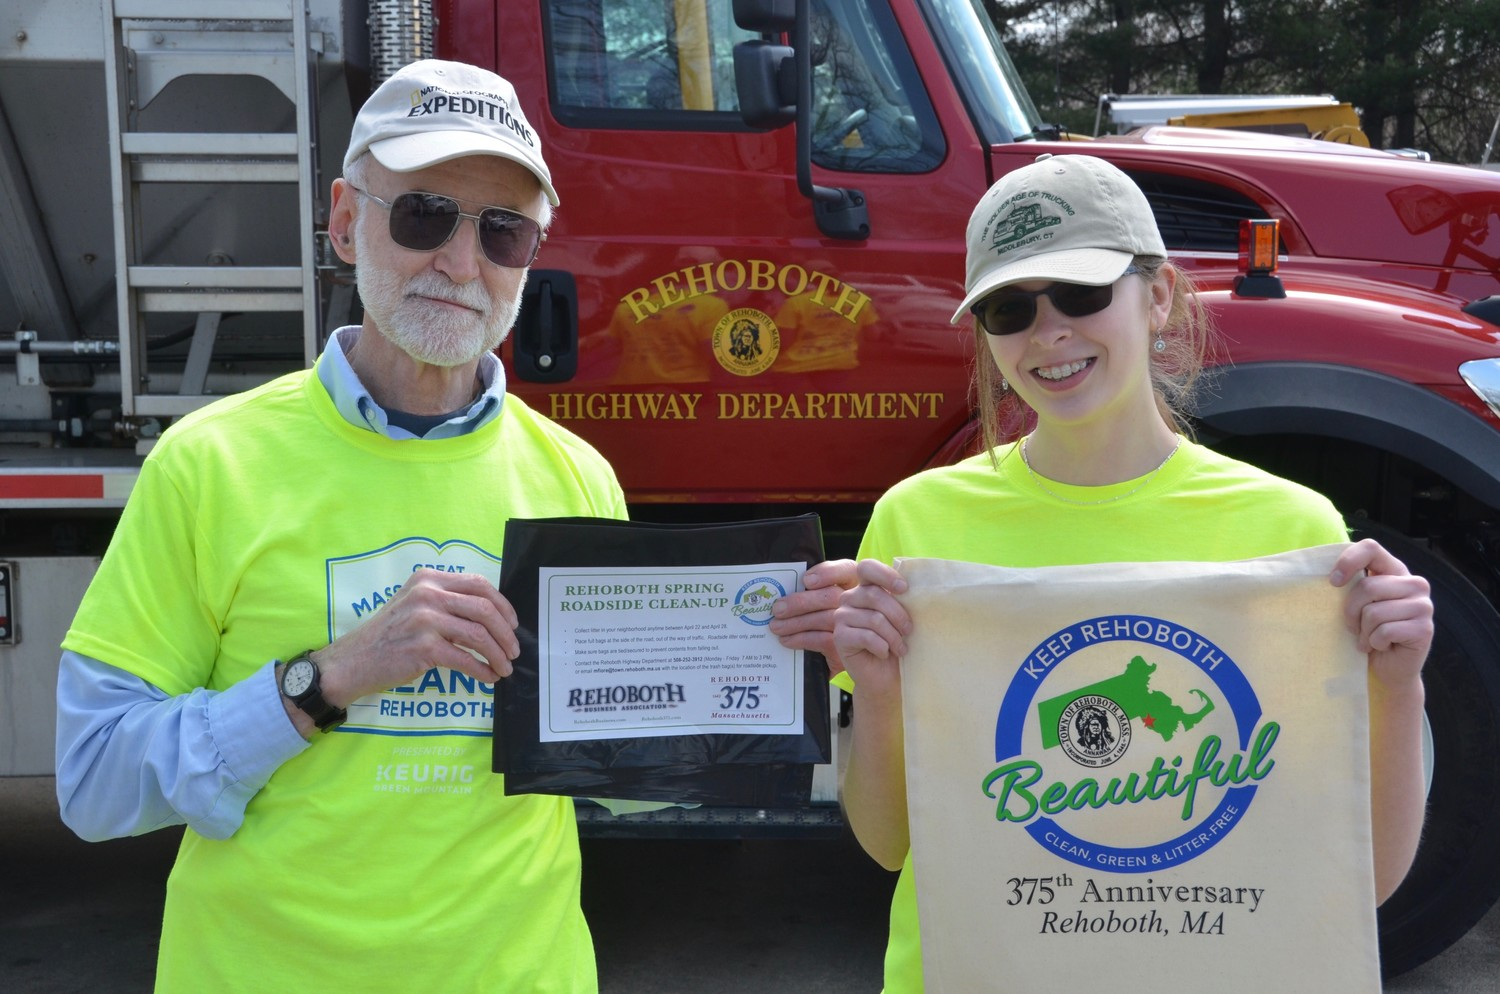 Abby Abrahamson – Chairperson – Keep Rehoboth Beautiful Subcommittee Ron Whittemore – Member – Keep Rehoboth Beautiful Subcommittee